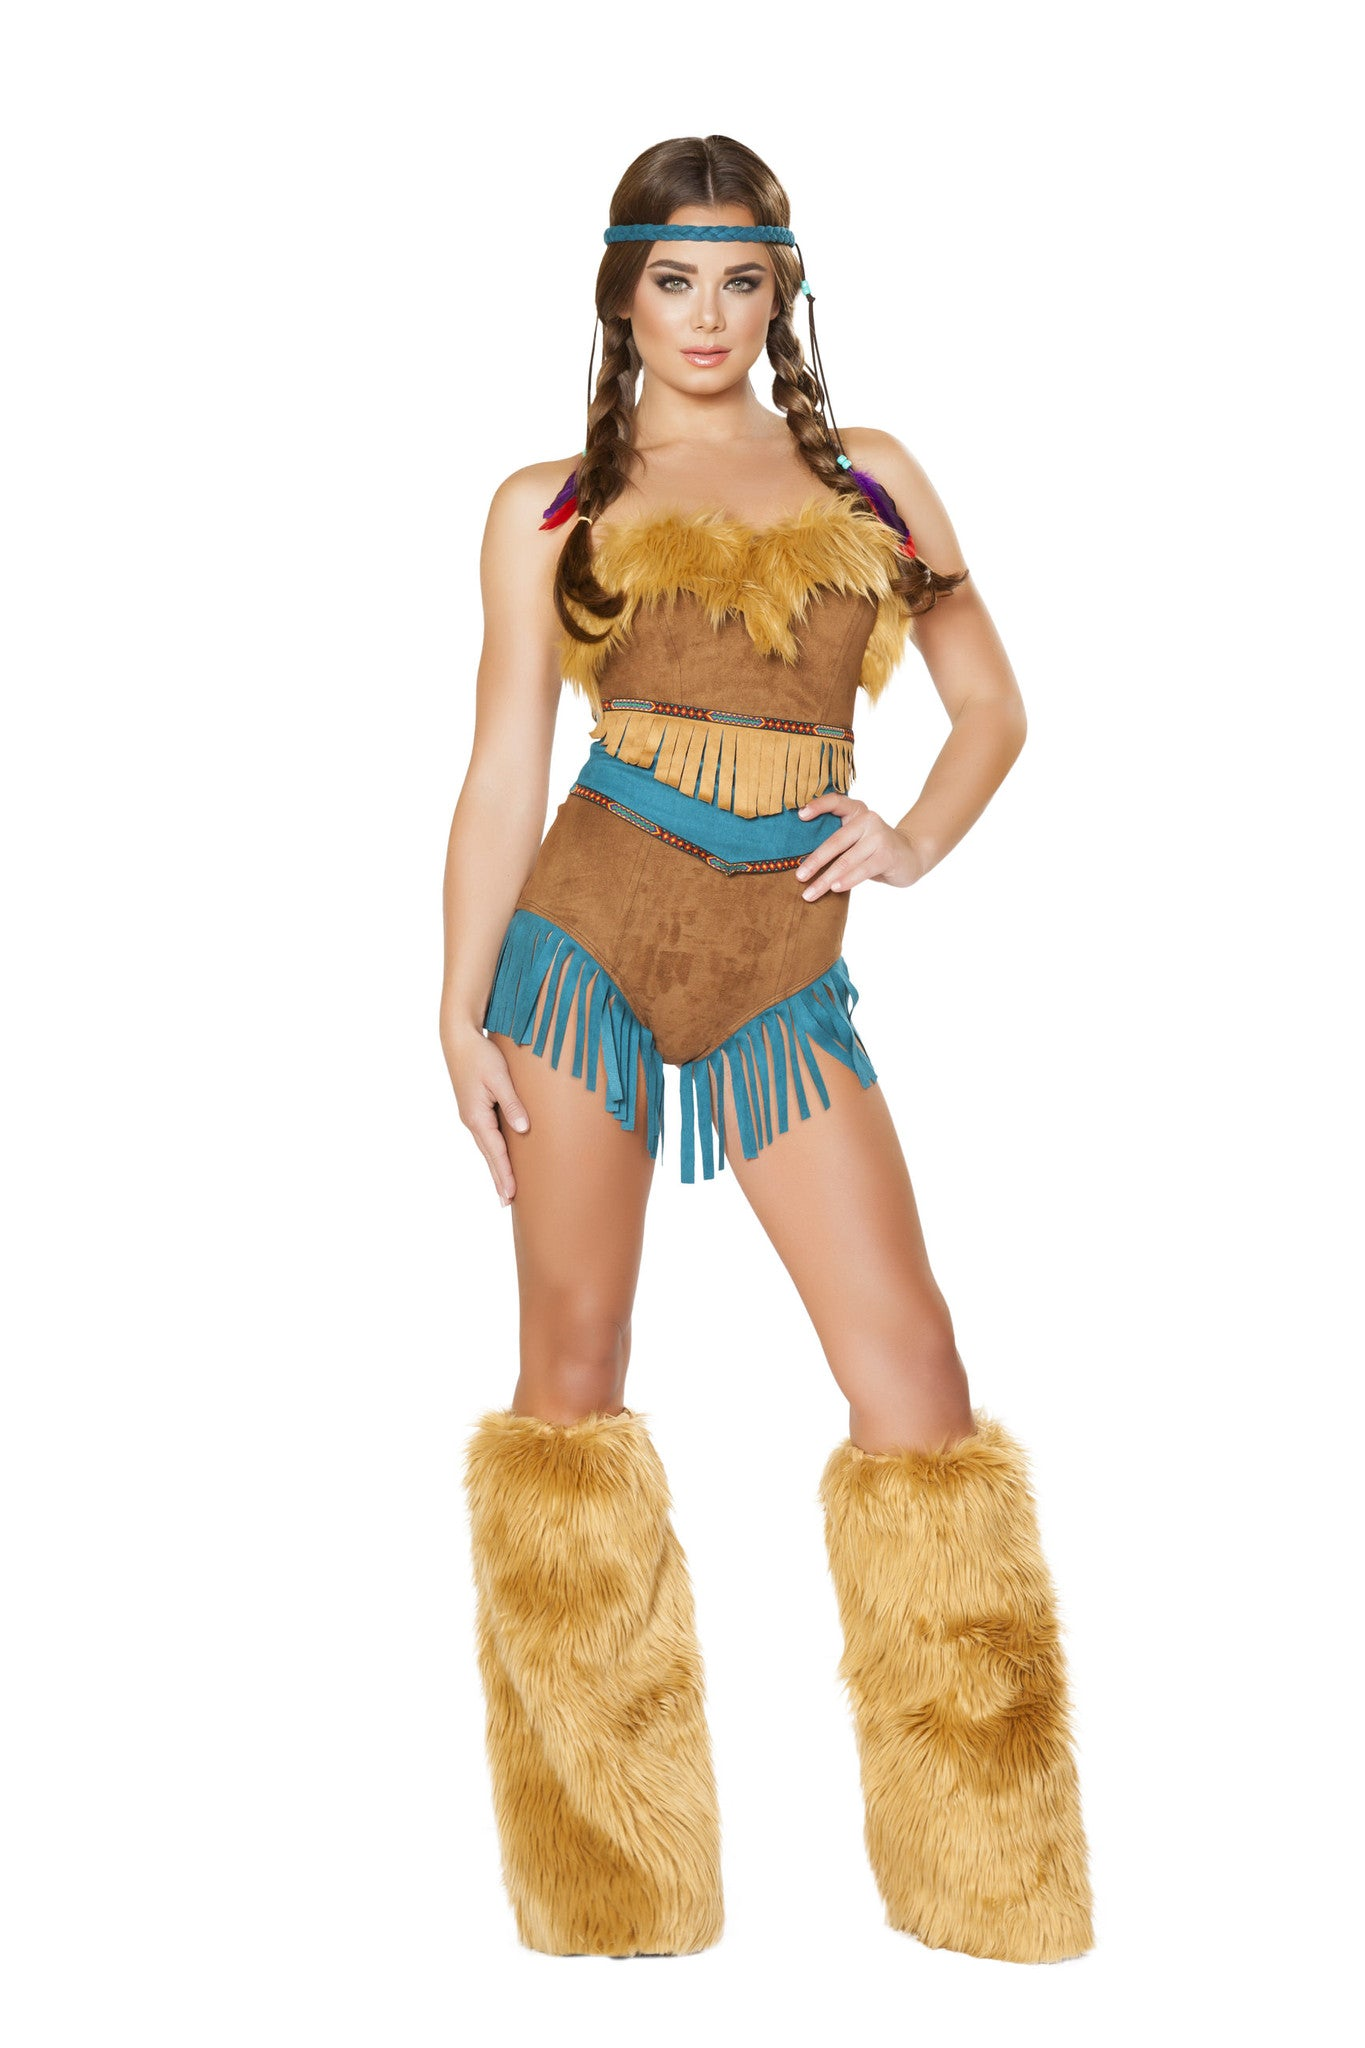 4704 - 2pc Tribal Vixen ${description} | Roma Costume and Roma Confidential wholesale manufacturer of Women Apparel bulk world wide wholesale and world wide drop ship services for Adult Halloween Costumes, Sexy and Elegant Lingerie, Rave Clothing, Club wear, and Christmas Costumes. Costumes, Roma Costume, Inc., Roma Costume, Roma Confidential, Wholesale clothing, drop ship, drop ship service, Wholesale Lingerie, Wholesale Adult Halloween Costumes, Rave Clothing, EDM Clothing, Festival Wear, Christmas Costumes, Clubwear, Club wear.